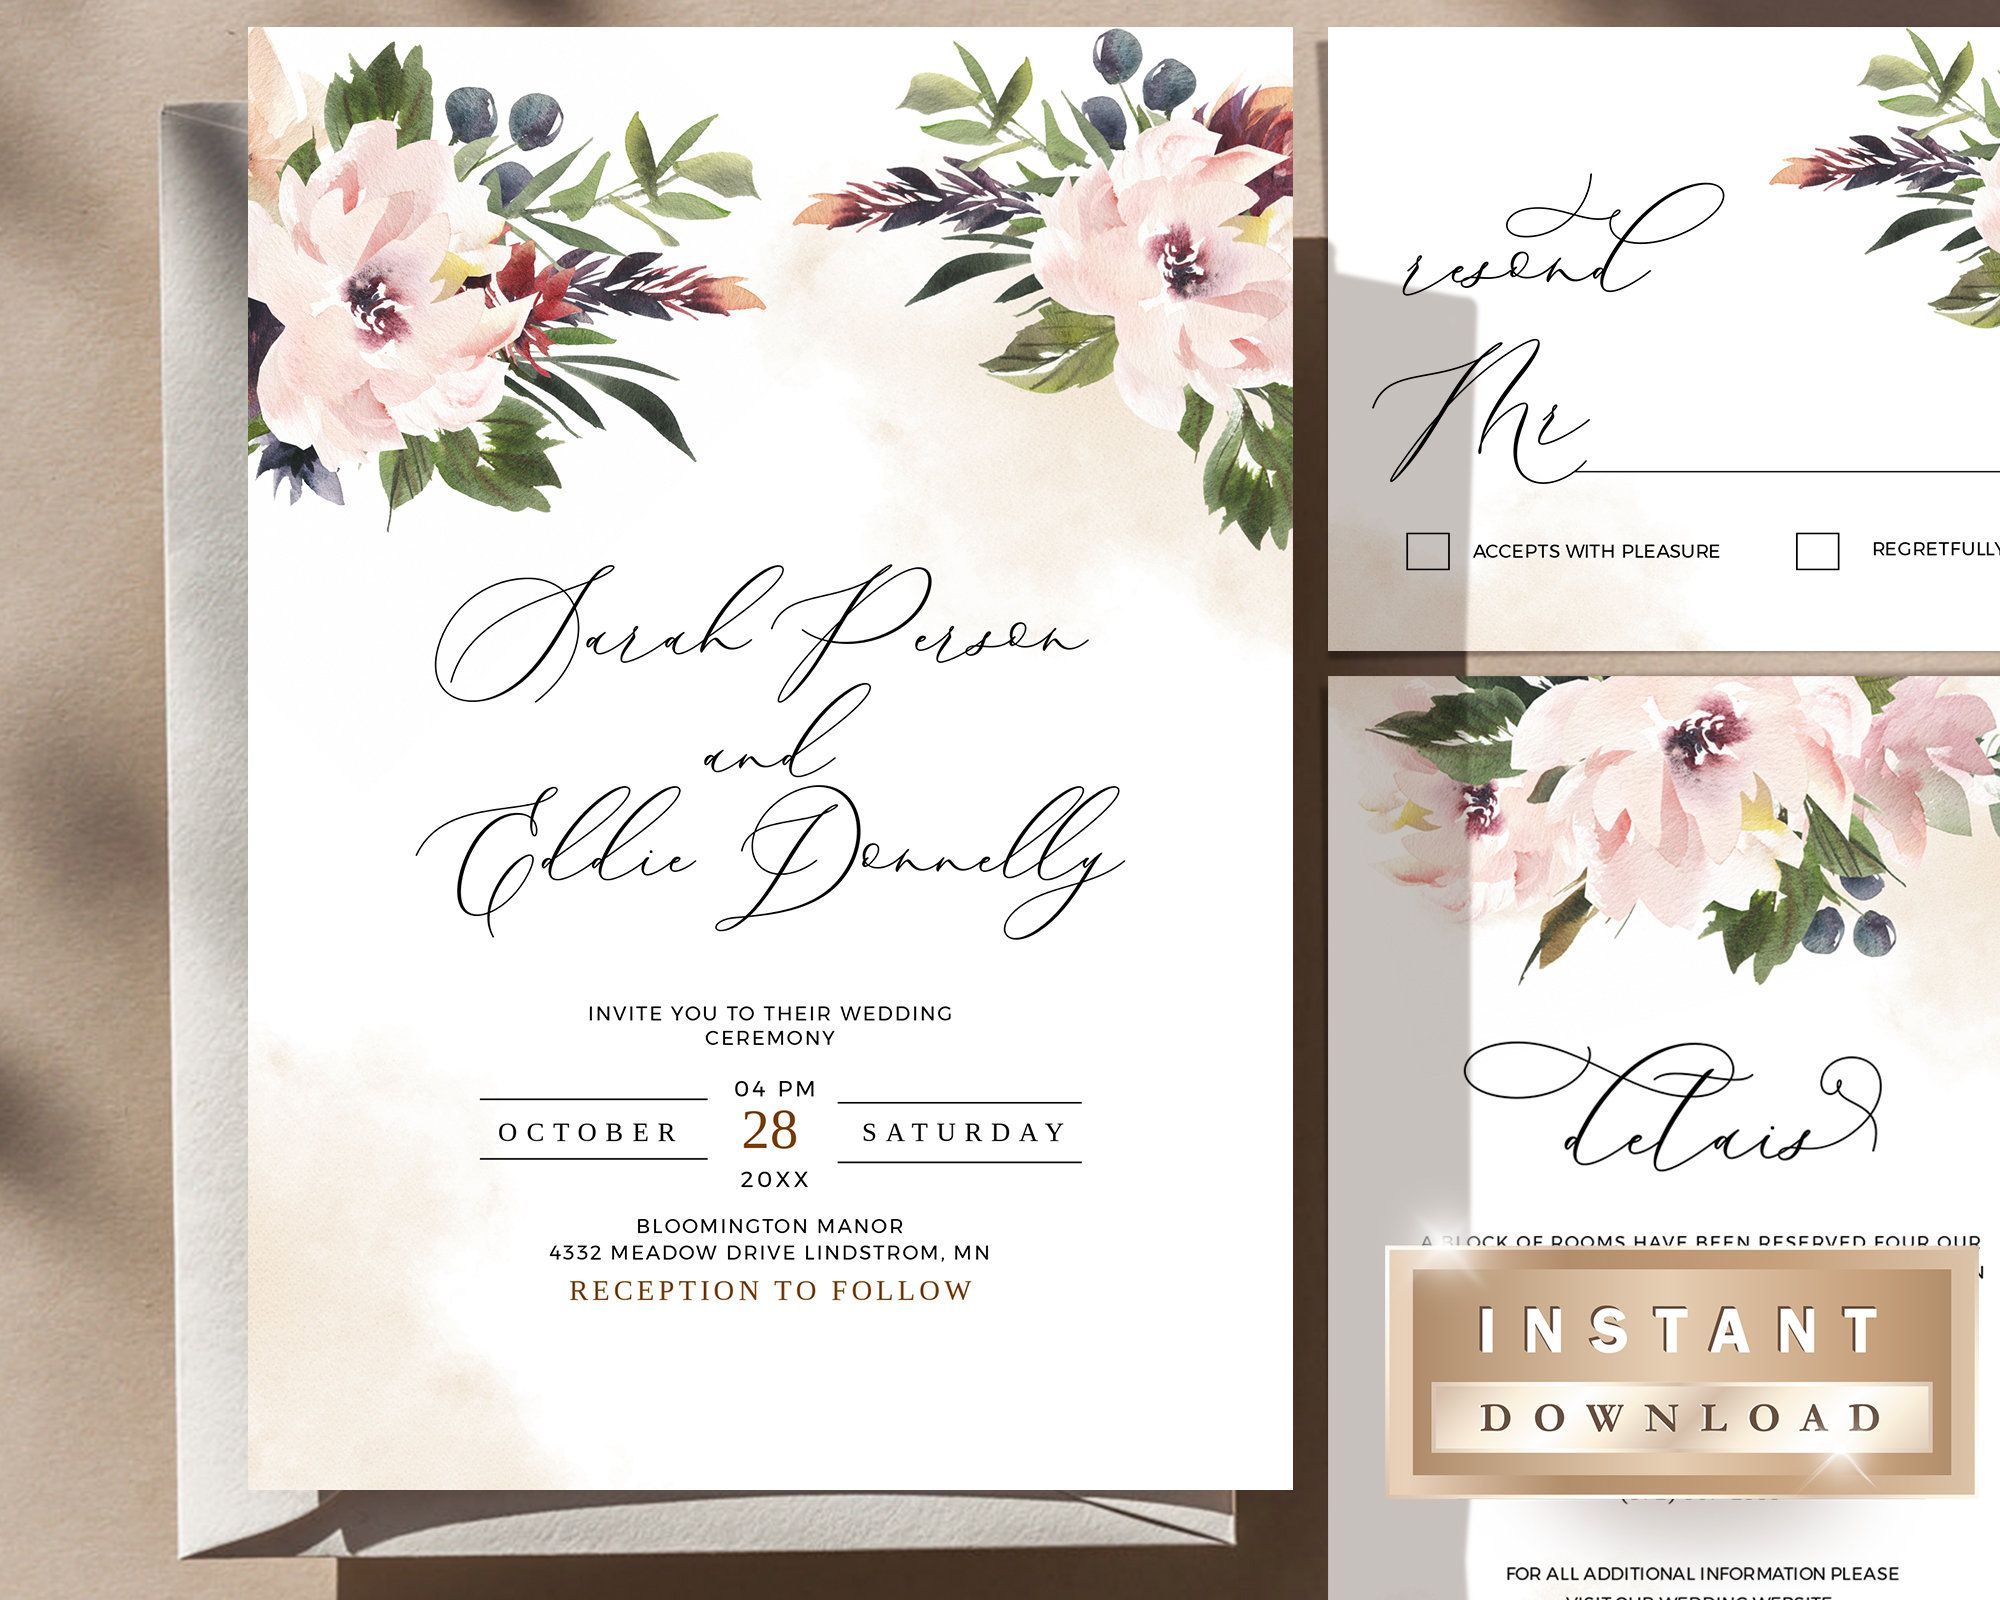 Wedding Bundle Template Instant Download Invitation White   Etsy Gallery